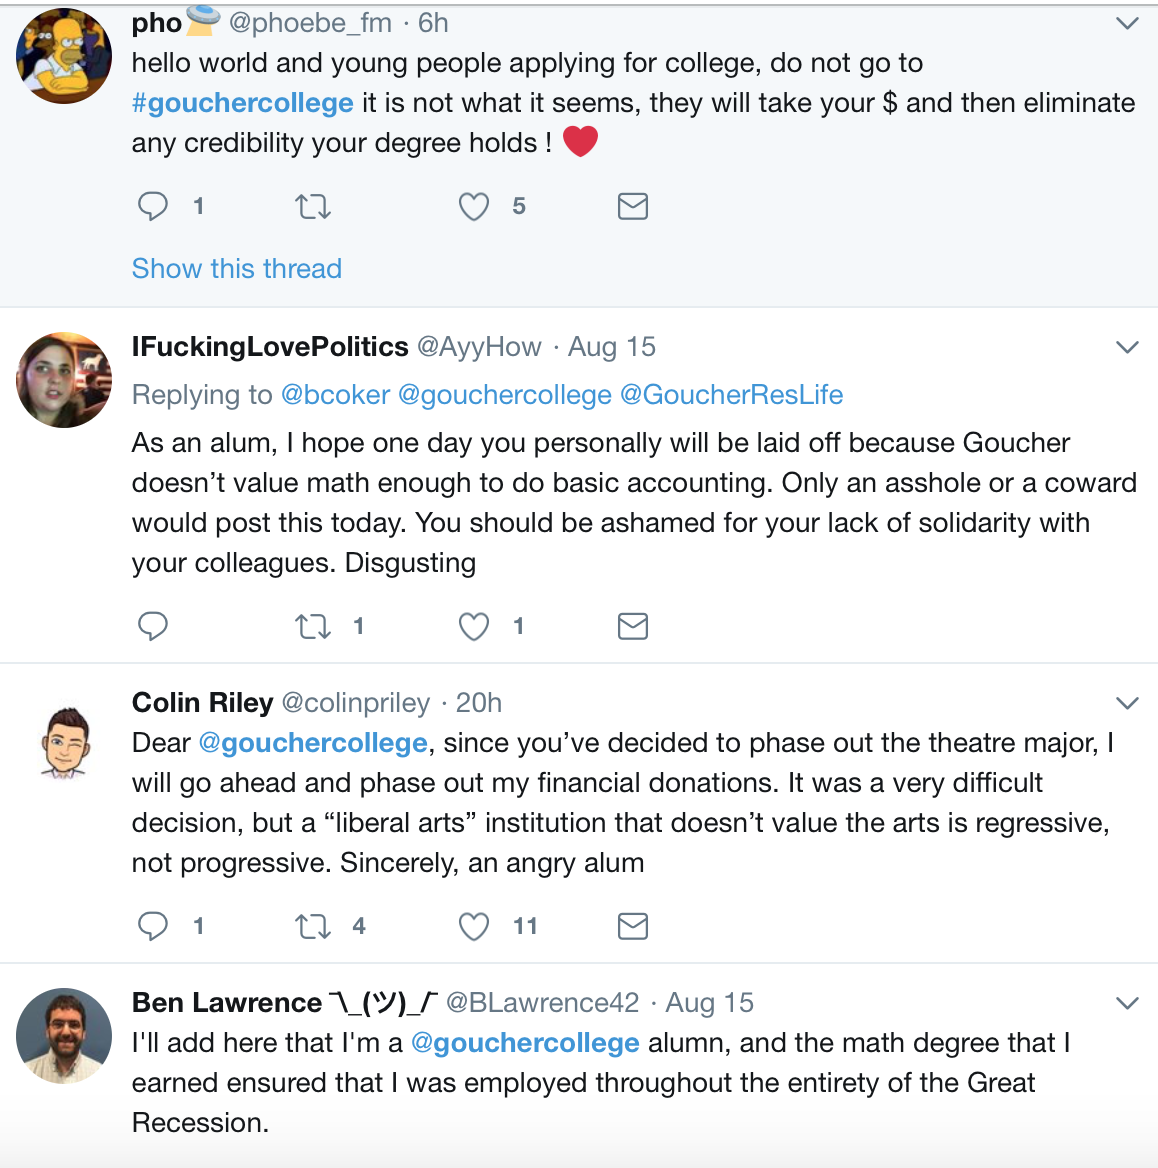 "Text of tweet from @phoebe_fm: ""hello world and young people applying for college, do not go to #gouchercollege it is not what it seems, they will take your money and then eliminate any credibility your degree holds."" Tweet from @AyyHow: ""As an alum, I hope one day you personally will be laid off because Goucher doesn't value math enough to do basic accounting. Only an asshole or a coward would post this today. You should be ashamed for your lack of solidarity with your colleagues. Disgusting."" Tweet from @colinpriley: ""Dear @gouchercollege, since you've decided to phase out the theatre major, I will go ahead and phase out my financial donations. It was a very difficult decision, but a 'liberal arts' institution that doesn't value the arts is regressive, not progressive. Sincerely, an angry alum."" Tweet from @BLawrence 42: ""I'll add here that I'm a @gouchercollege alumn, and the math degree that I earned ensured that I was employed throughout the entirety of the Great Recession."""